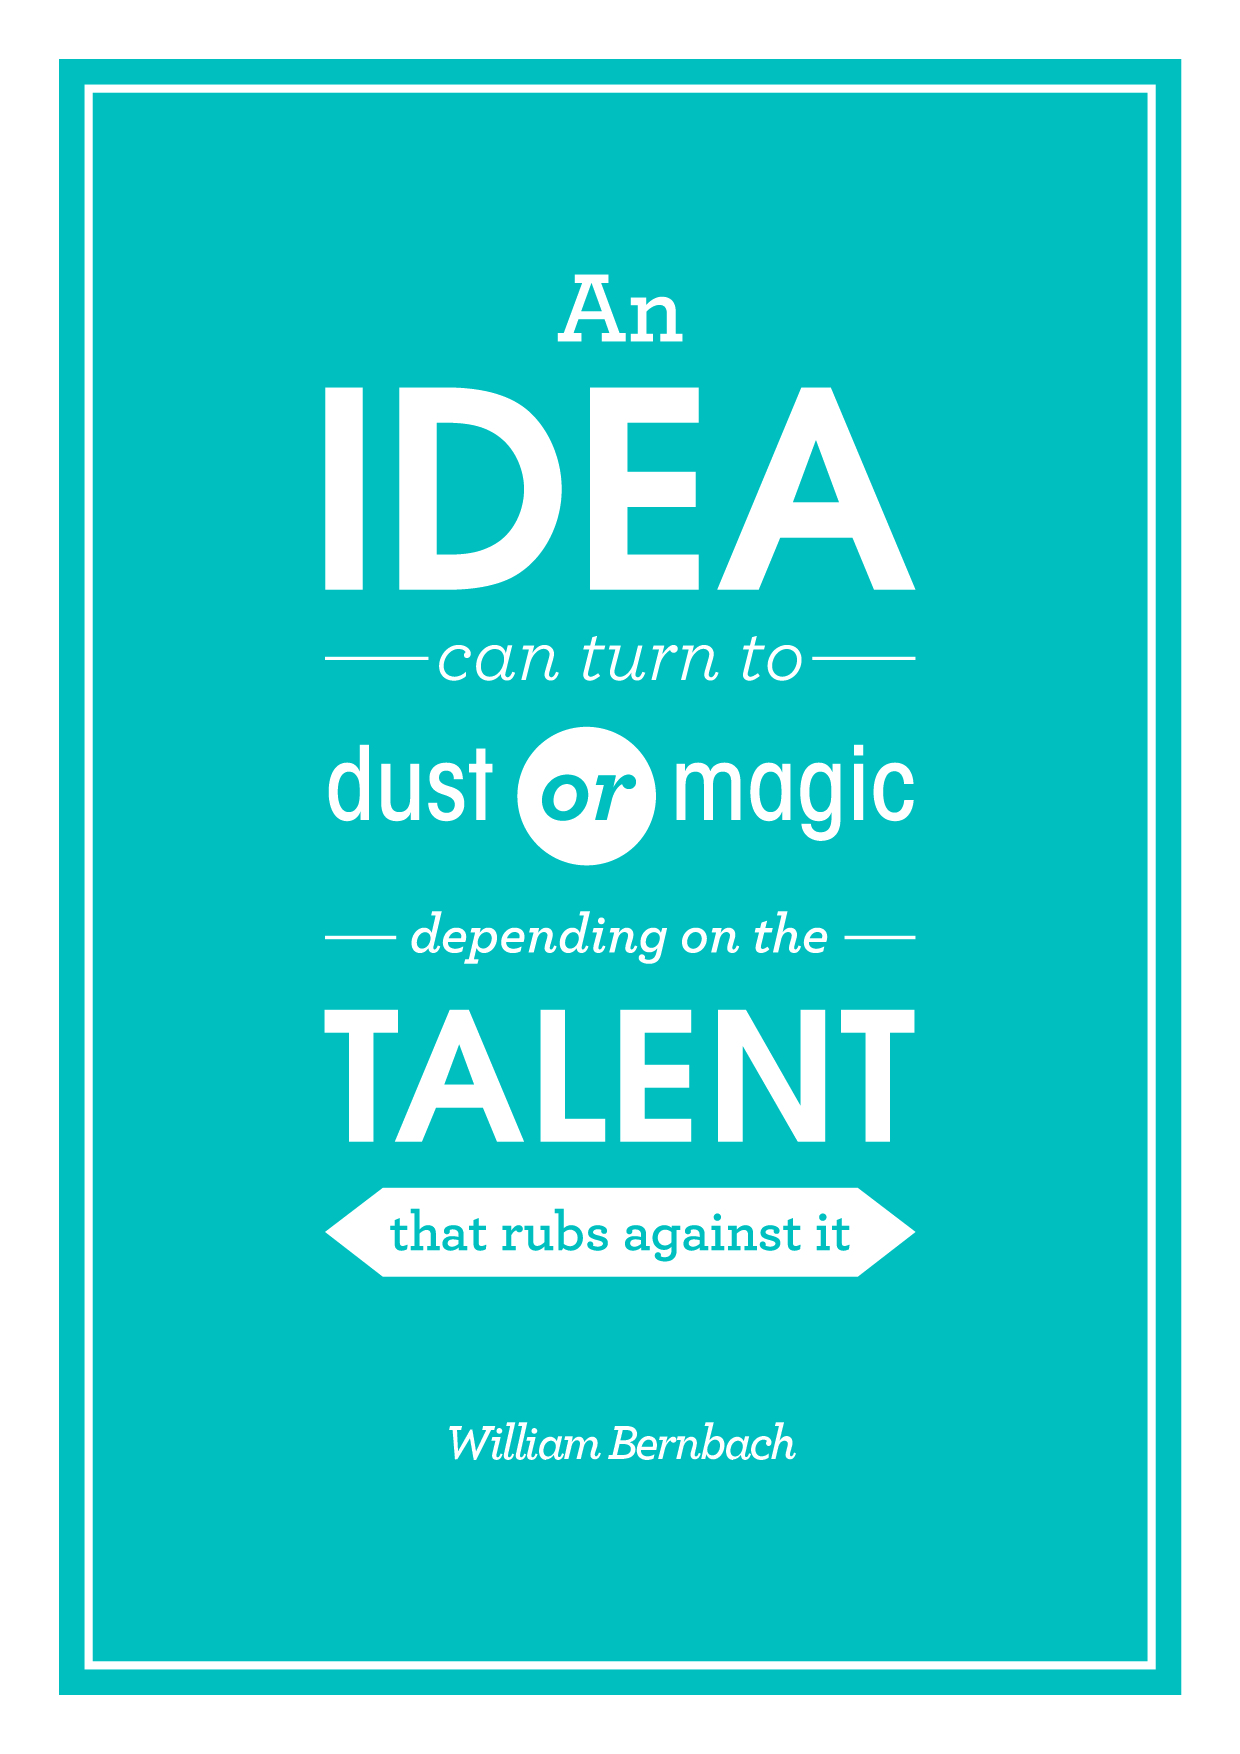 An idea can turn to dust or magic, typographic print by Dan at Ditto